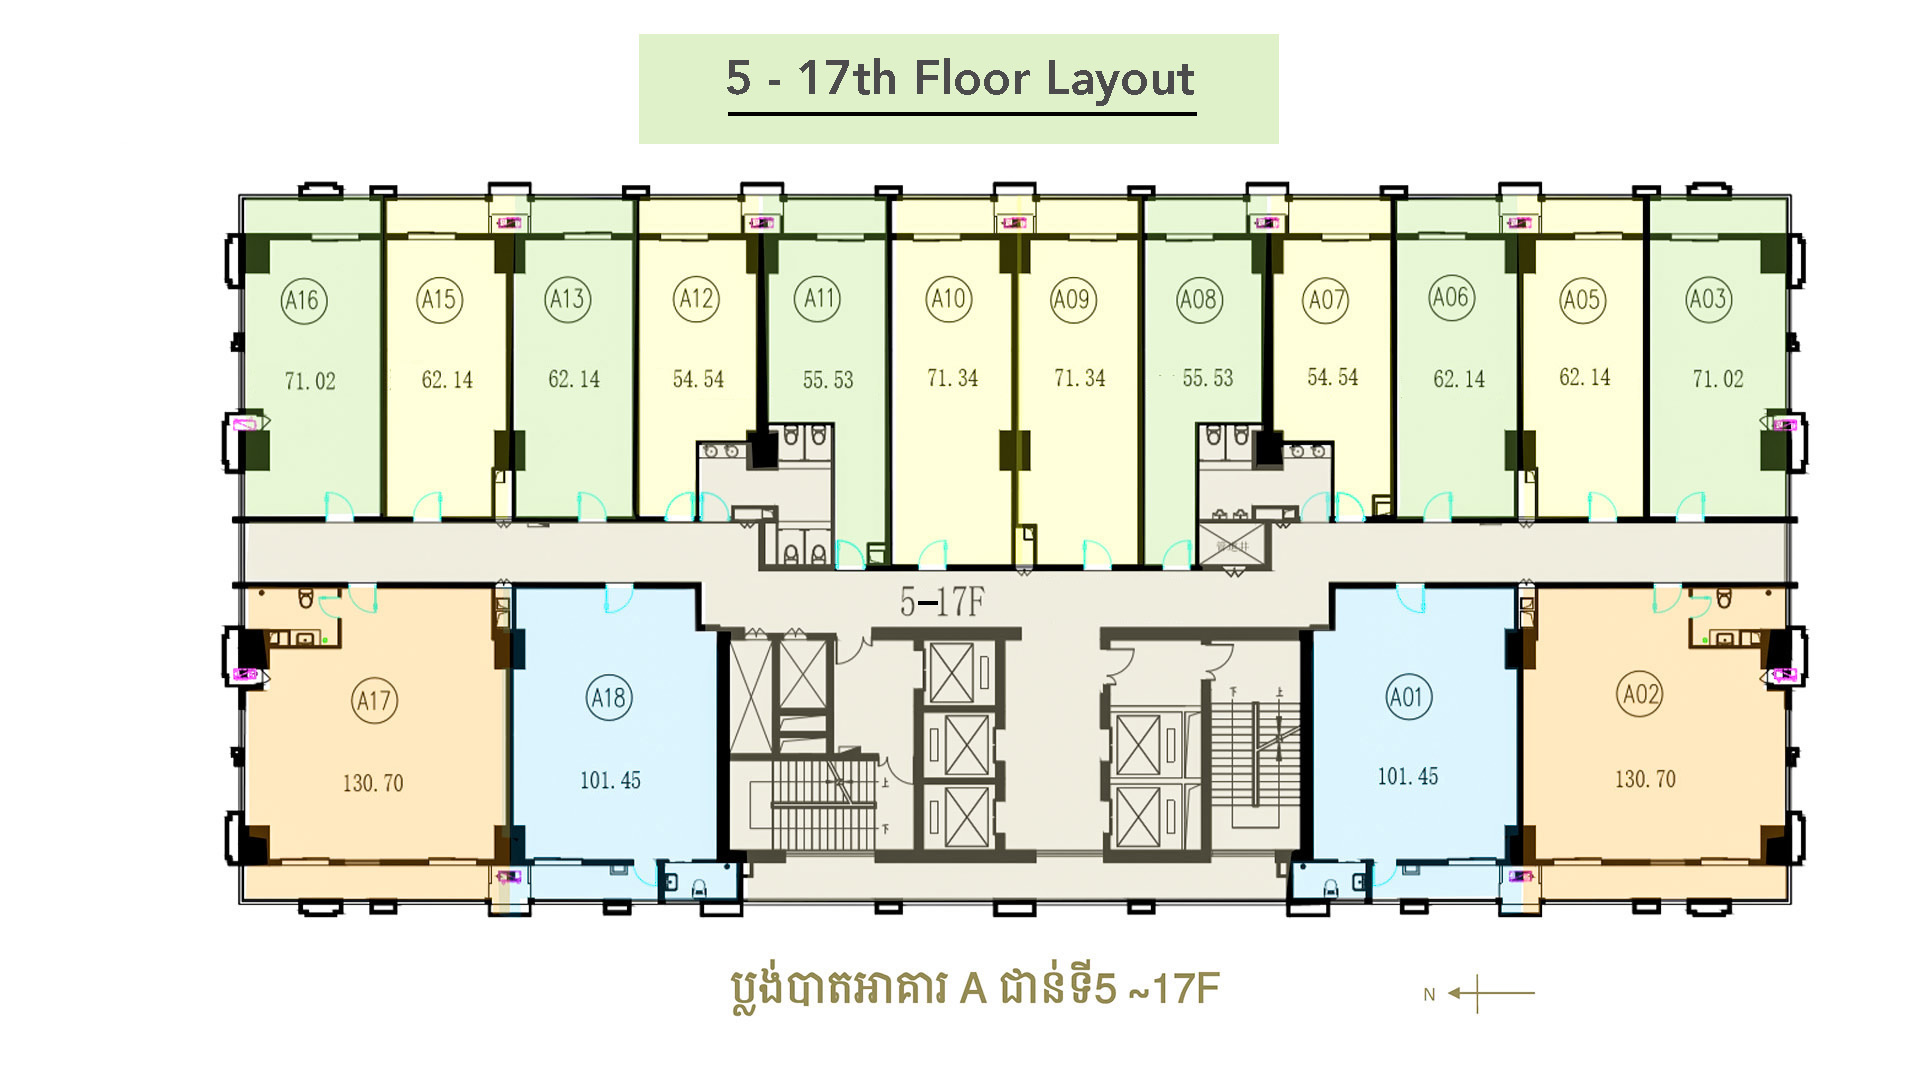 The Parkway - Office Space 5-17th Floor Layout